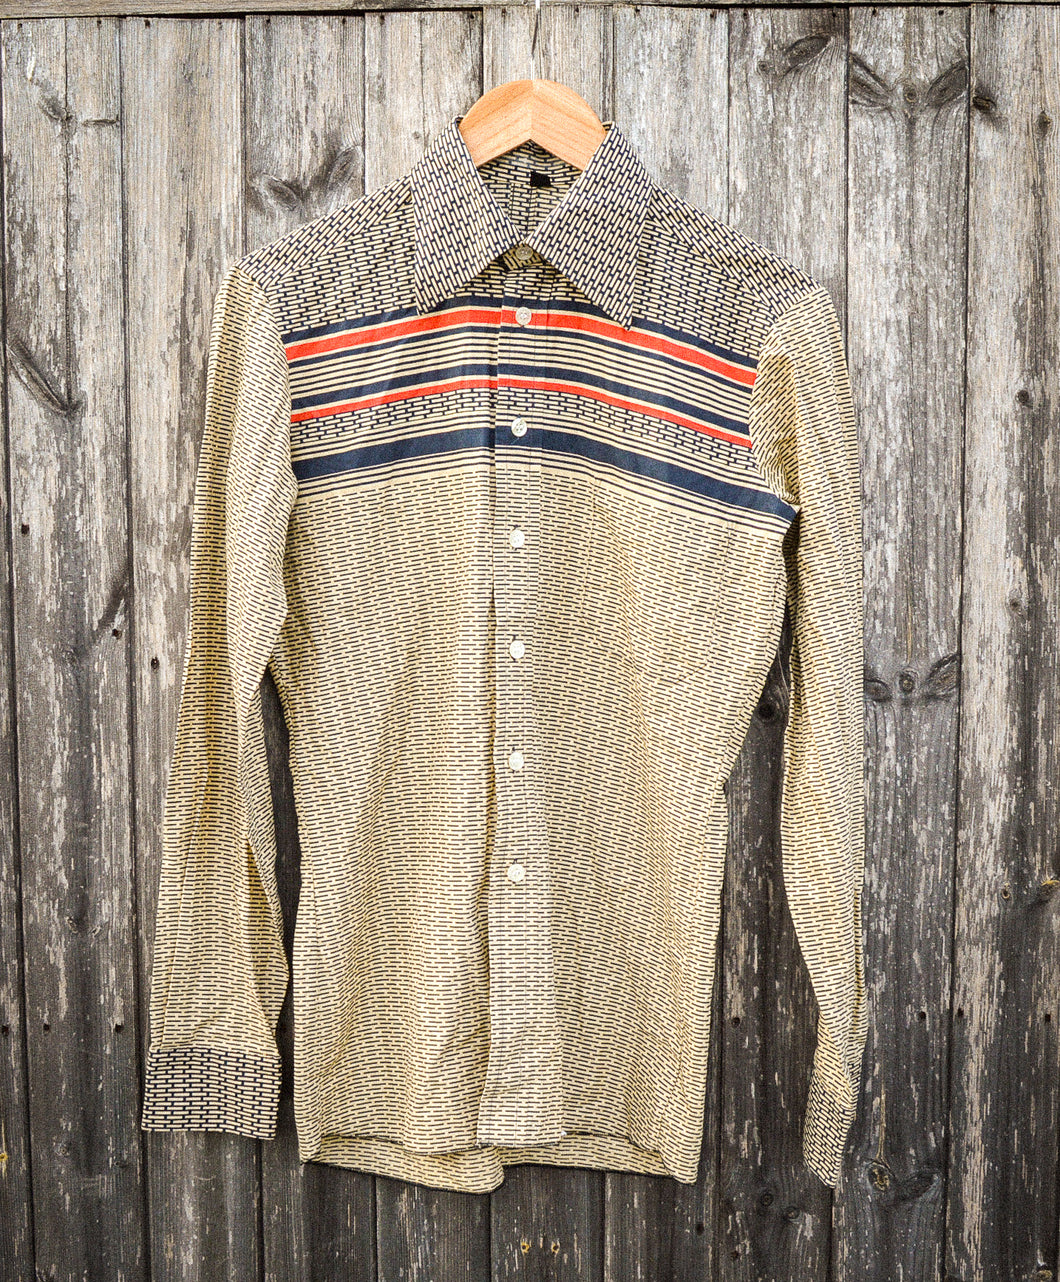 Thin Slim Fit 70's Collar Disco Shirt - The Bearded Gypsy Vintage Co.